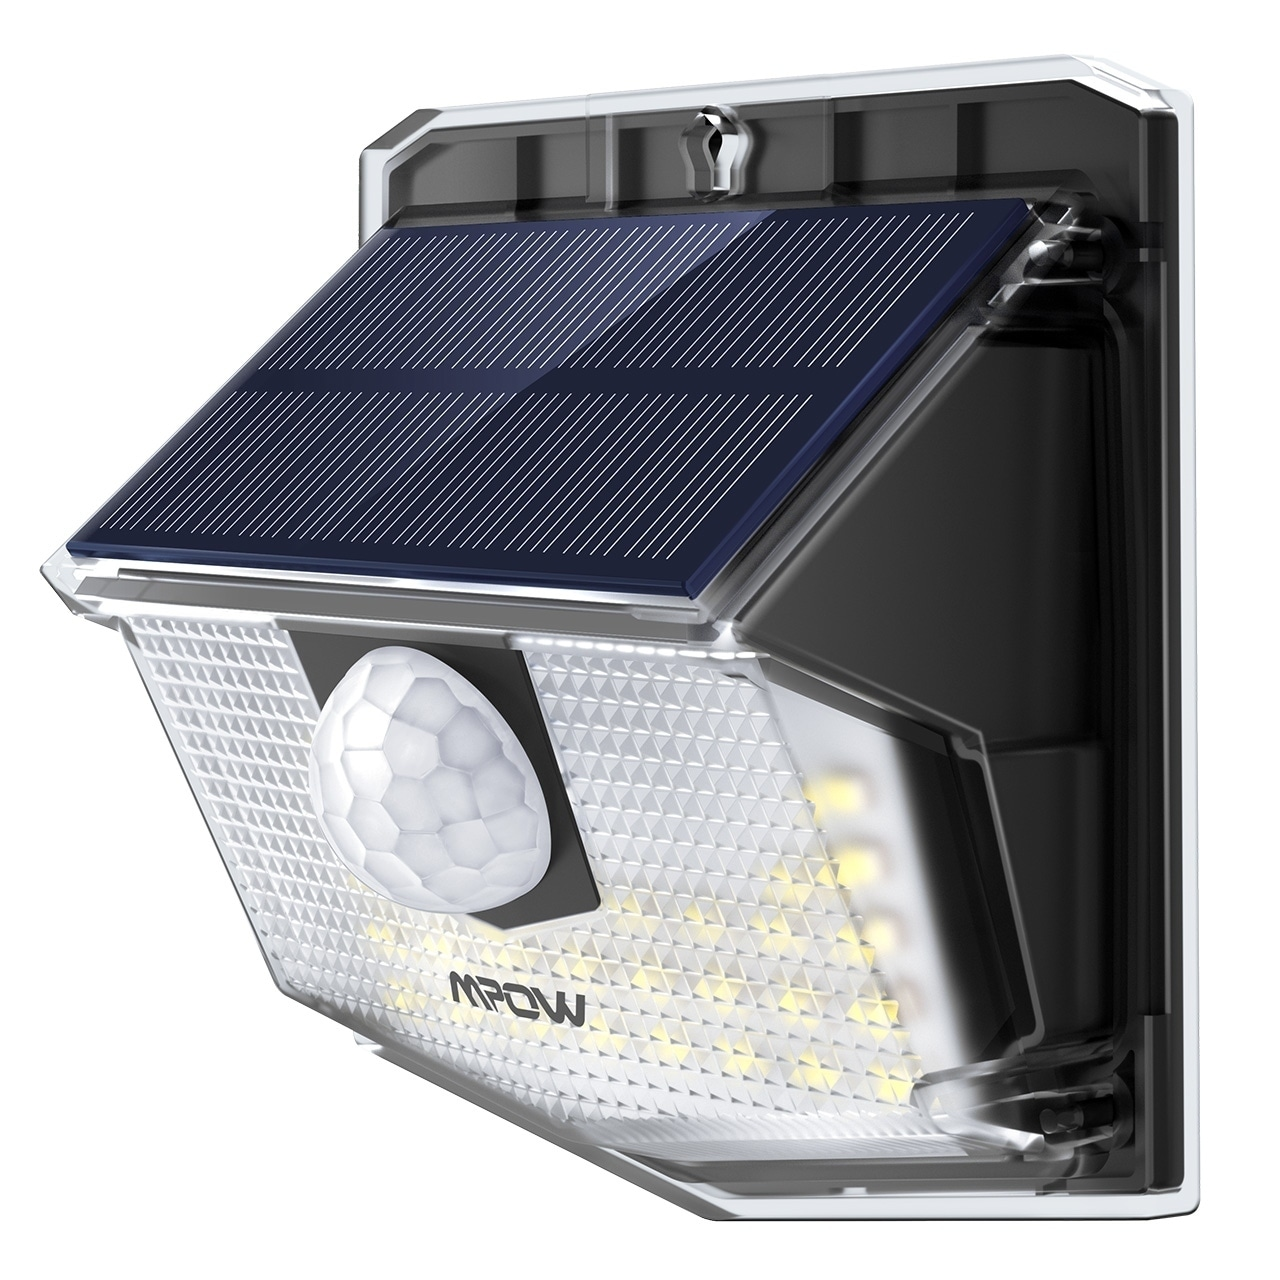 Woods 59408 Outdoor Hardwire Light Control With Photocell Light